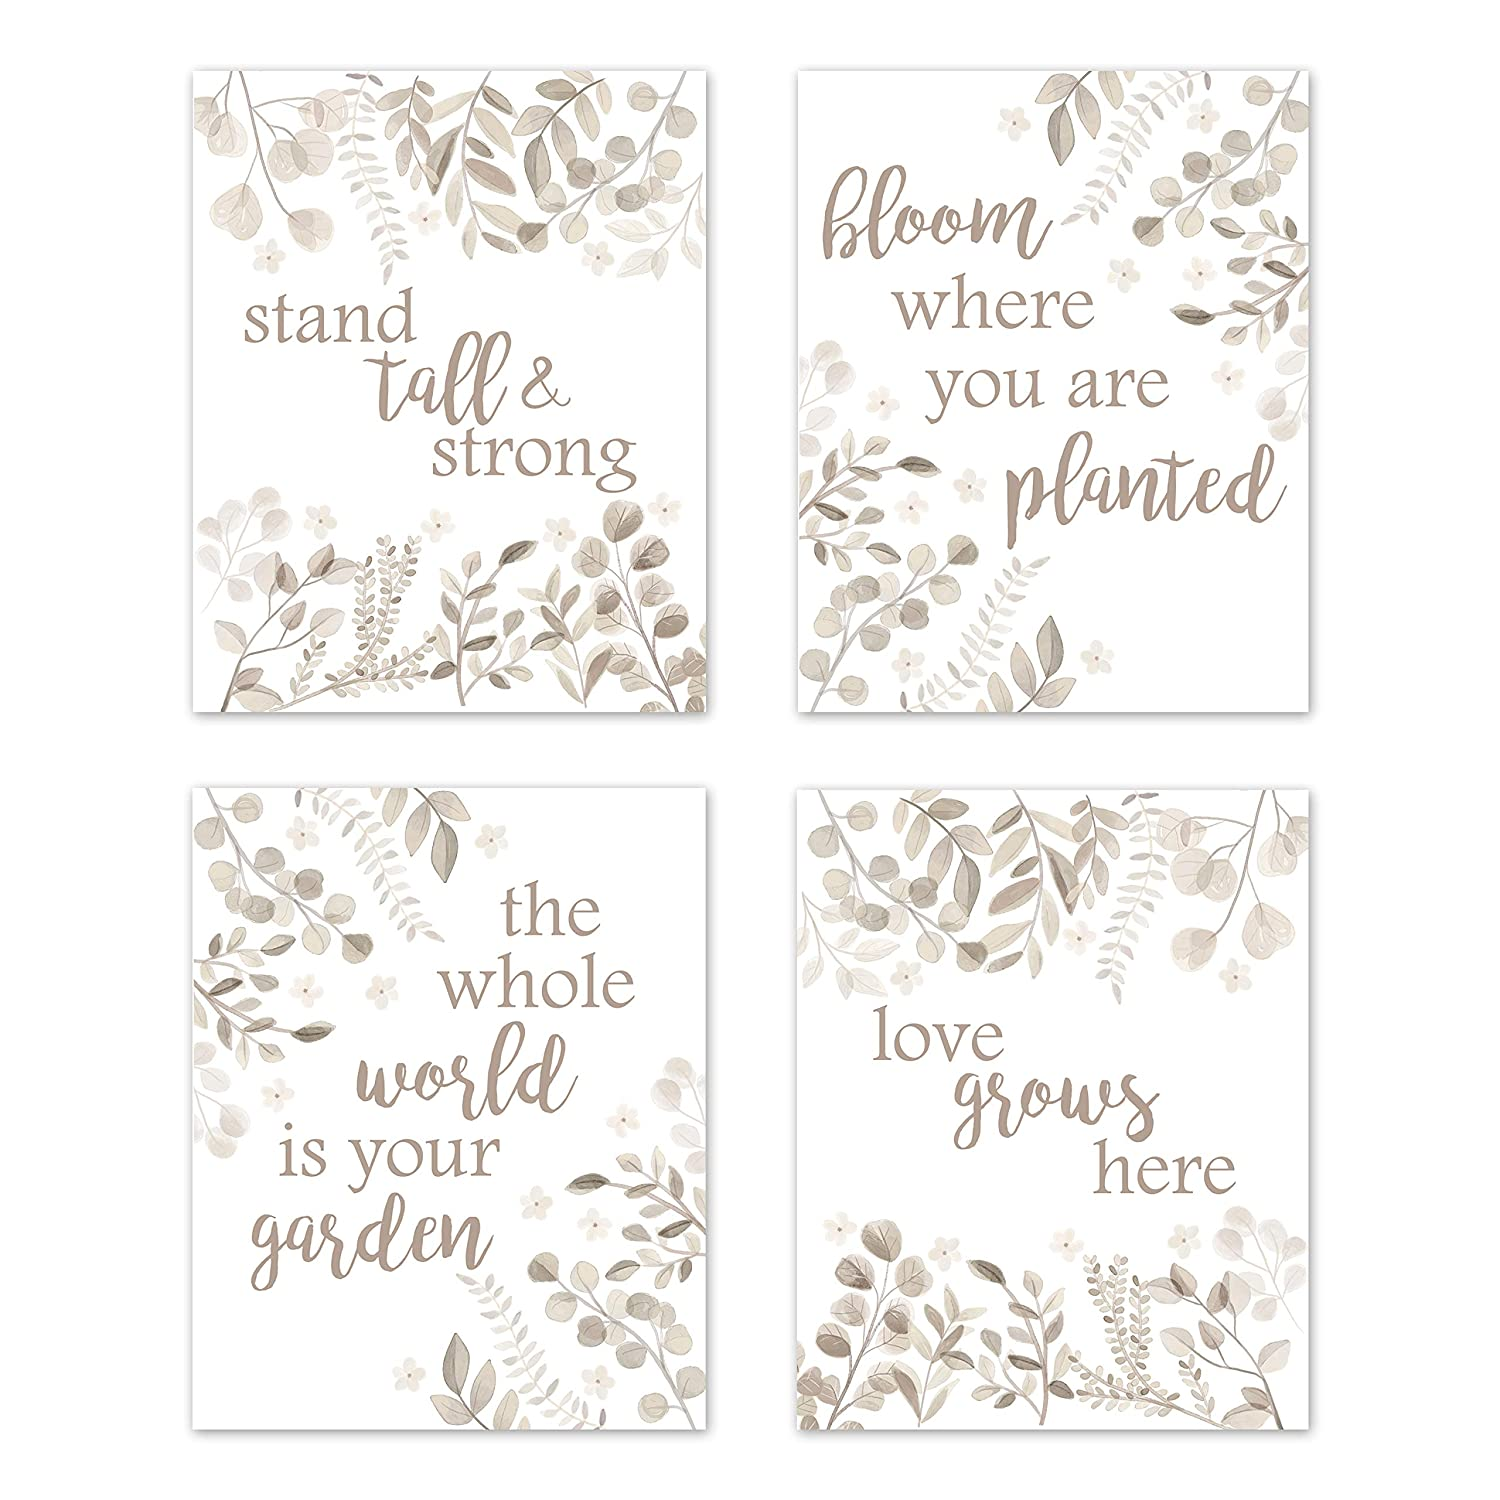 Sweet Jojo Designs Floral Leaf Wall Art Prints Room Decor for Baby, Nursery, and Kids - Set of 4 - Ivory Cream Beige Taupe and White Gender Neutral Boho Watercolor Botanical Woodland Tropical Garden